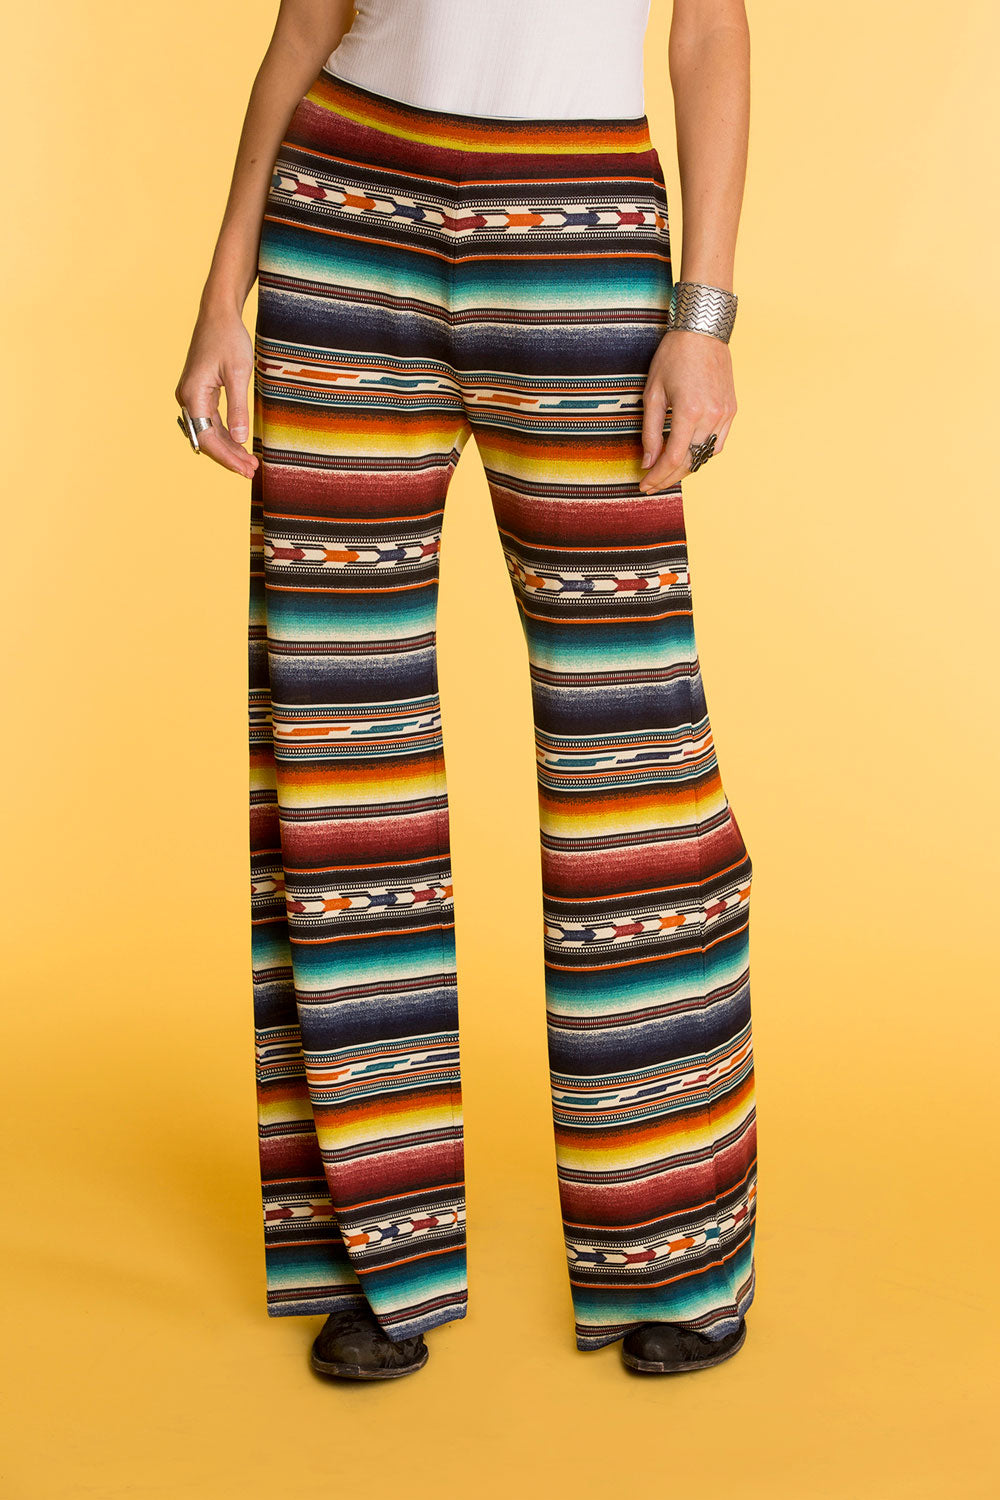 Arizona Highway Pant